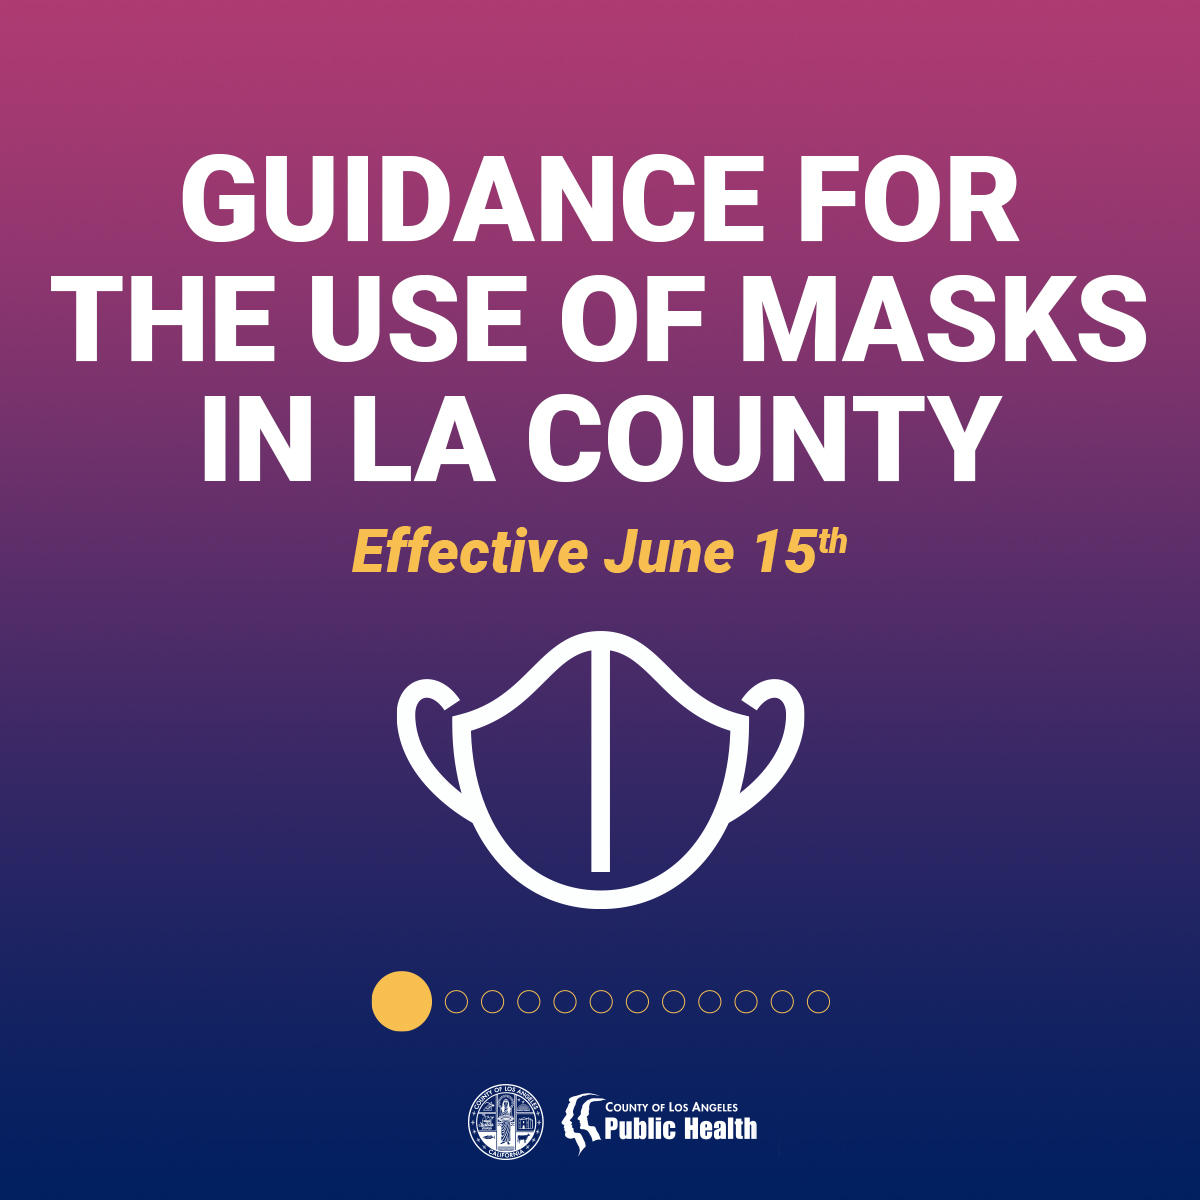 Effective June 15, LA County is aligning with the State's masking guidance. Learn more by visiting https://t.co/cDbQTNKDAj https://t.co/xIliBmY1Ht